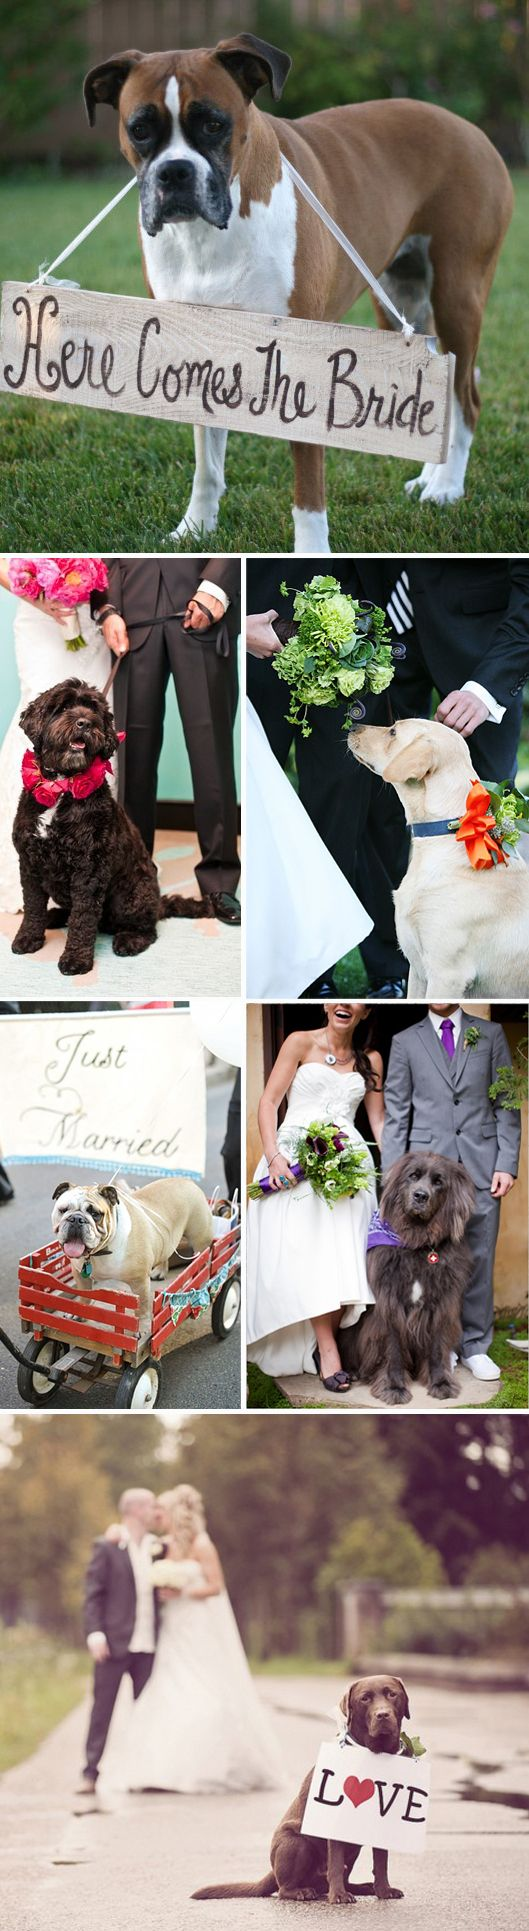 Tips for Including Dogs in Weddings - the #1 tip is to get a doggie attendant to help keep the day manageable